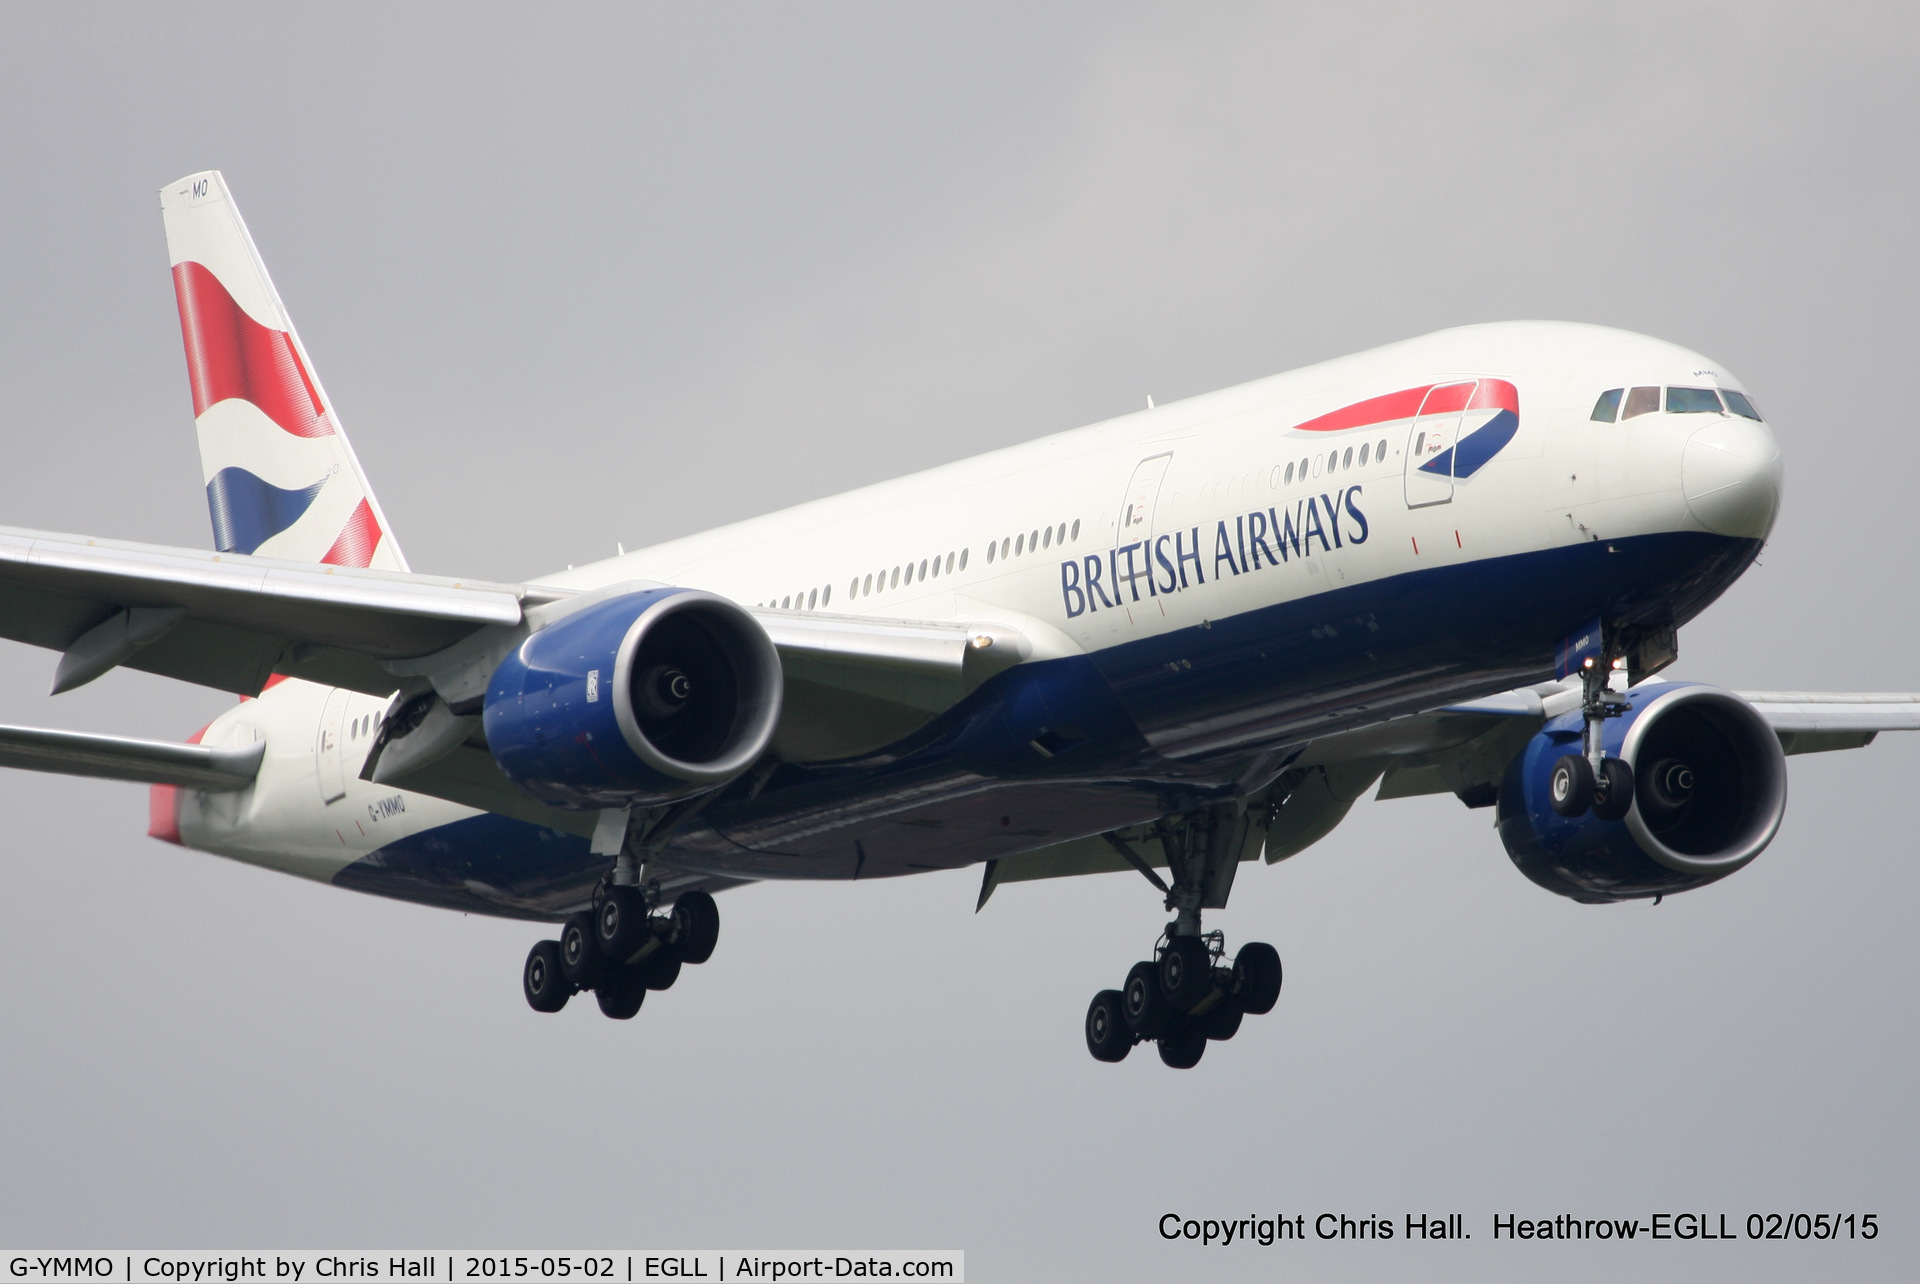 G-YMMO, 2001 Boeing 777-236 C/N 30317, British Airways